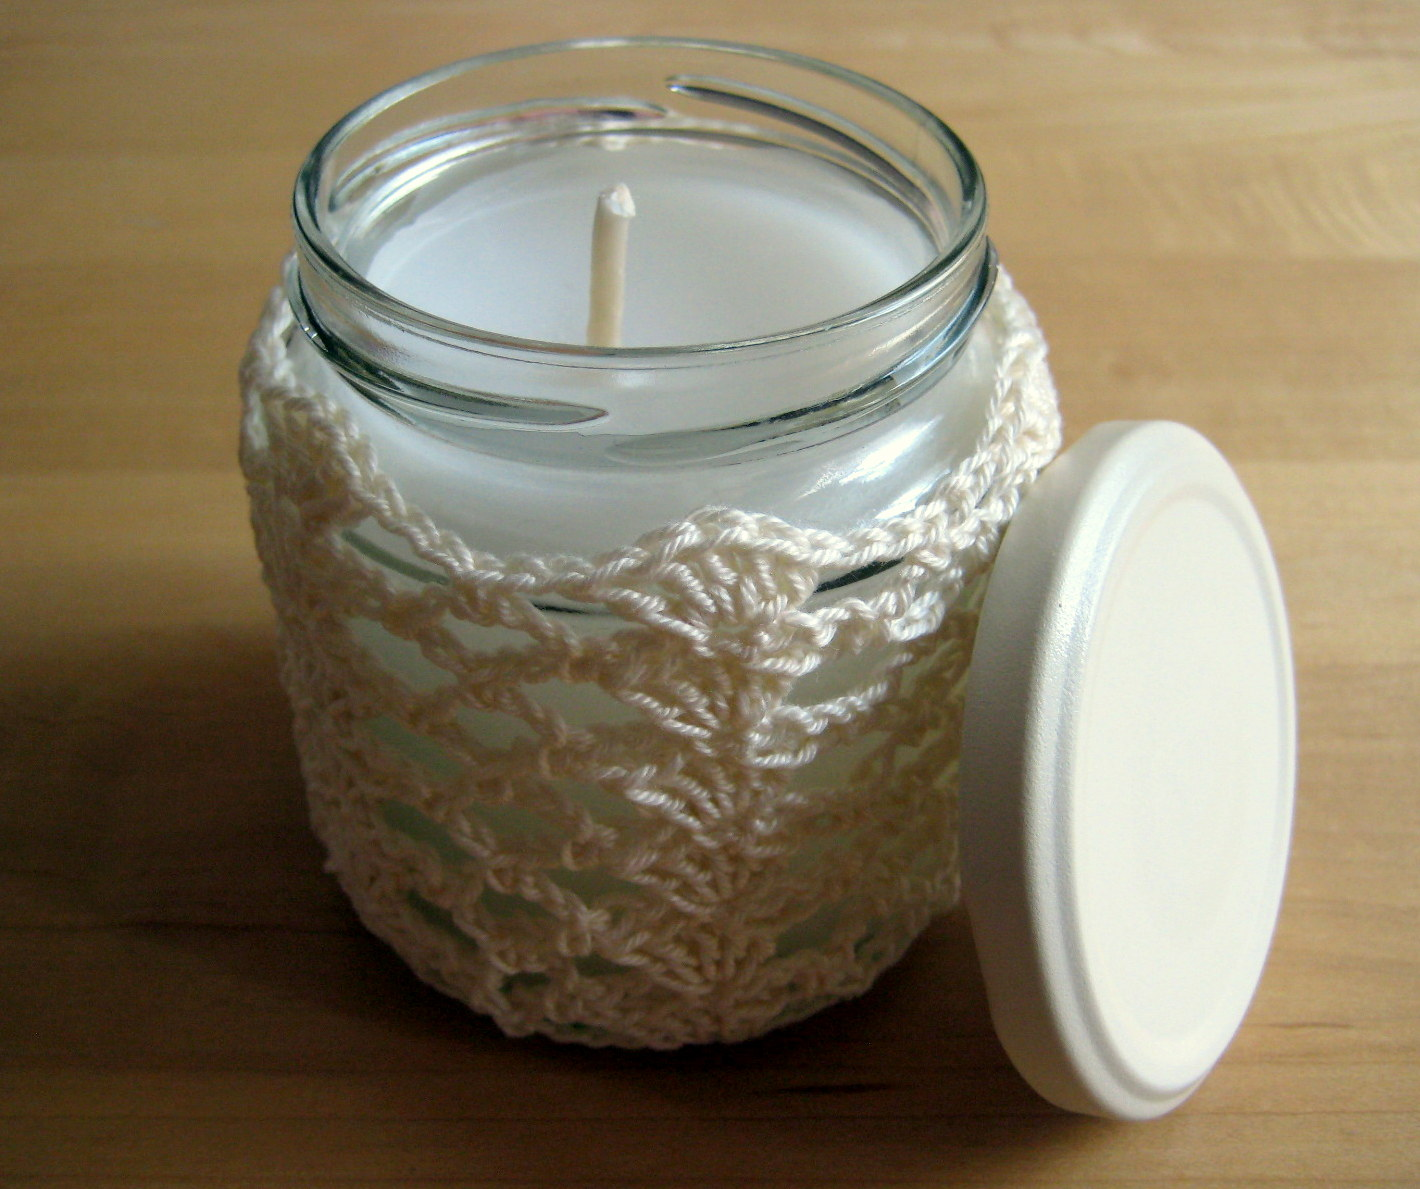 Menu Windlicht Crochet Jar Cover I: Shells And Lace | Make My Day Creative